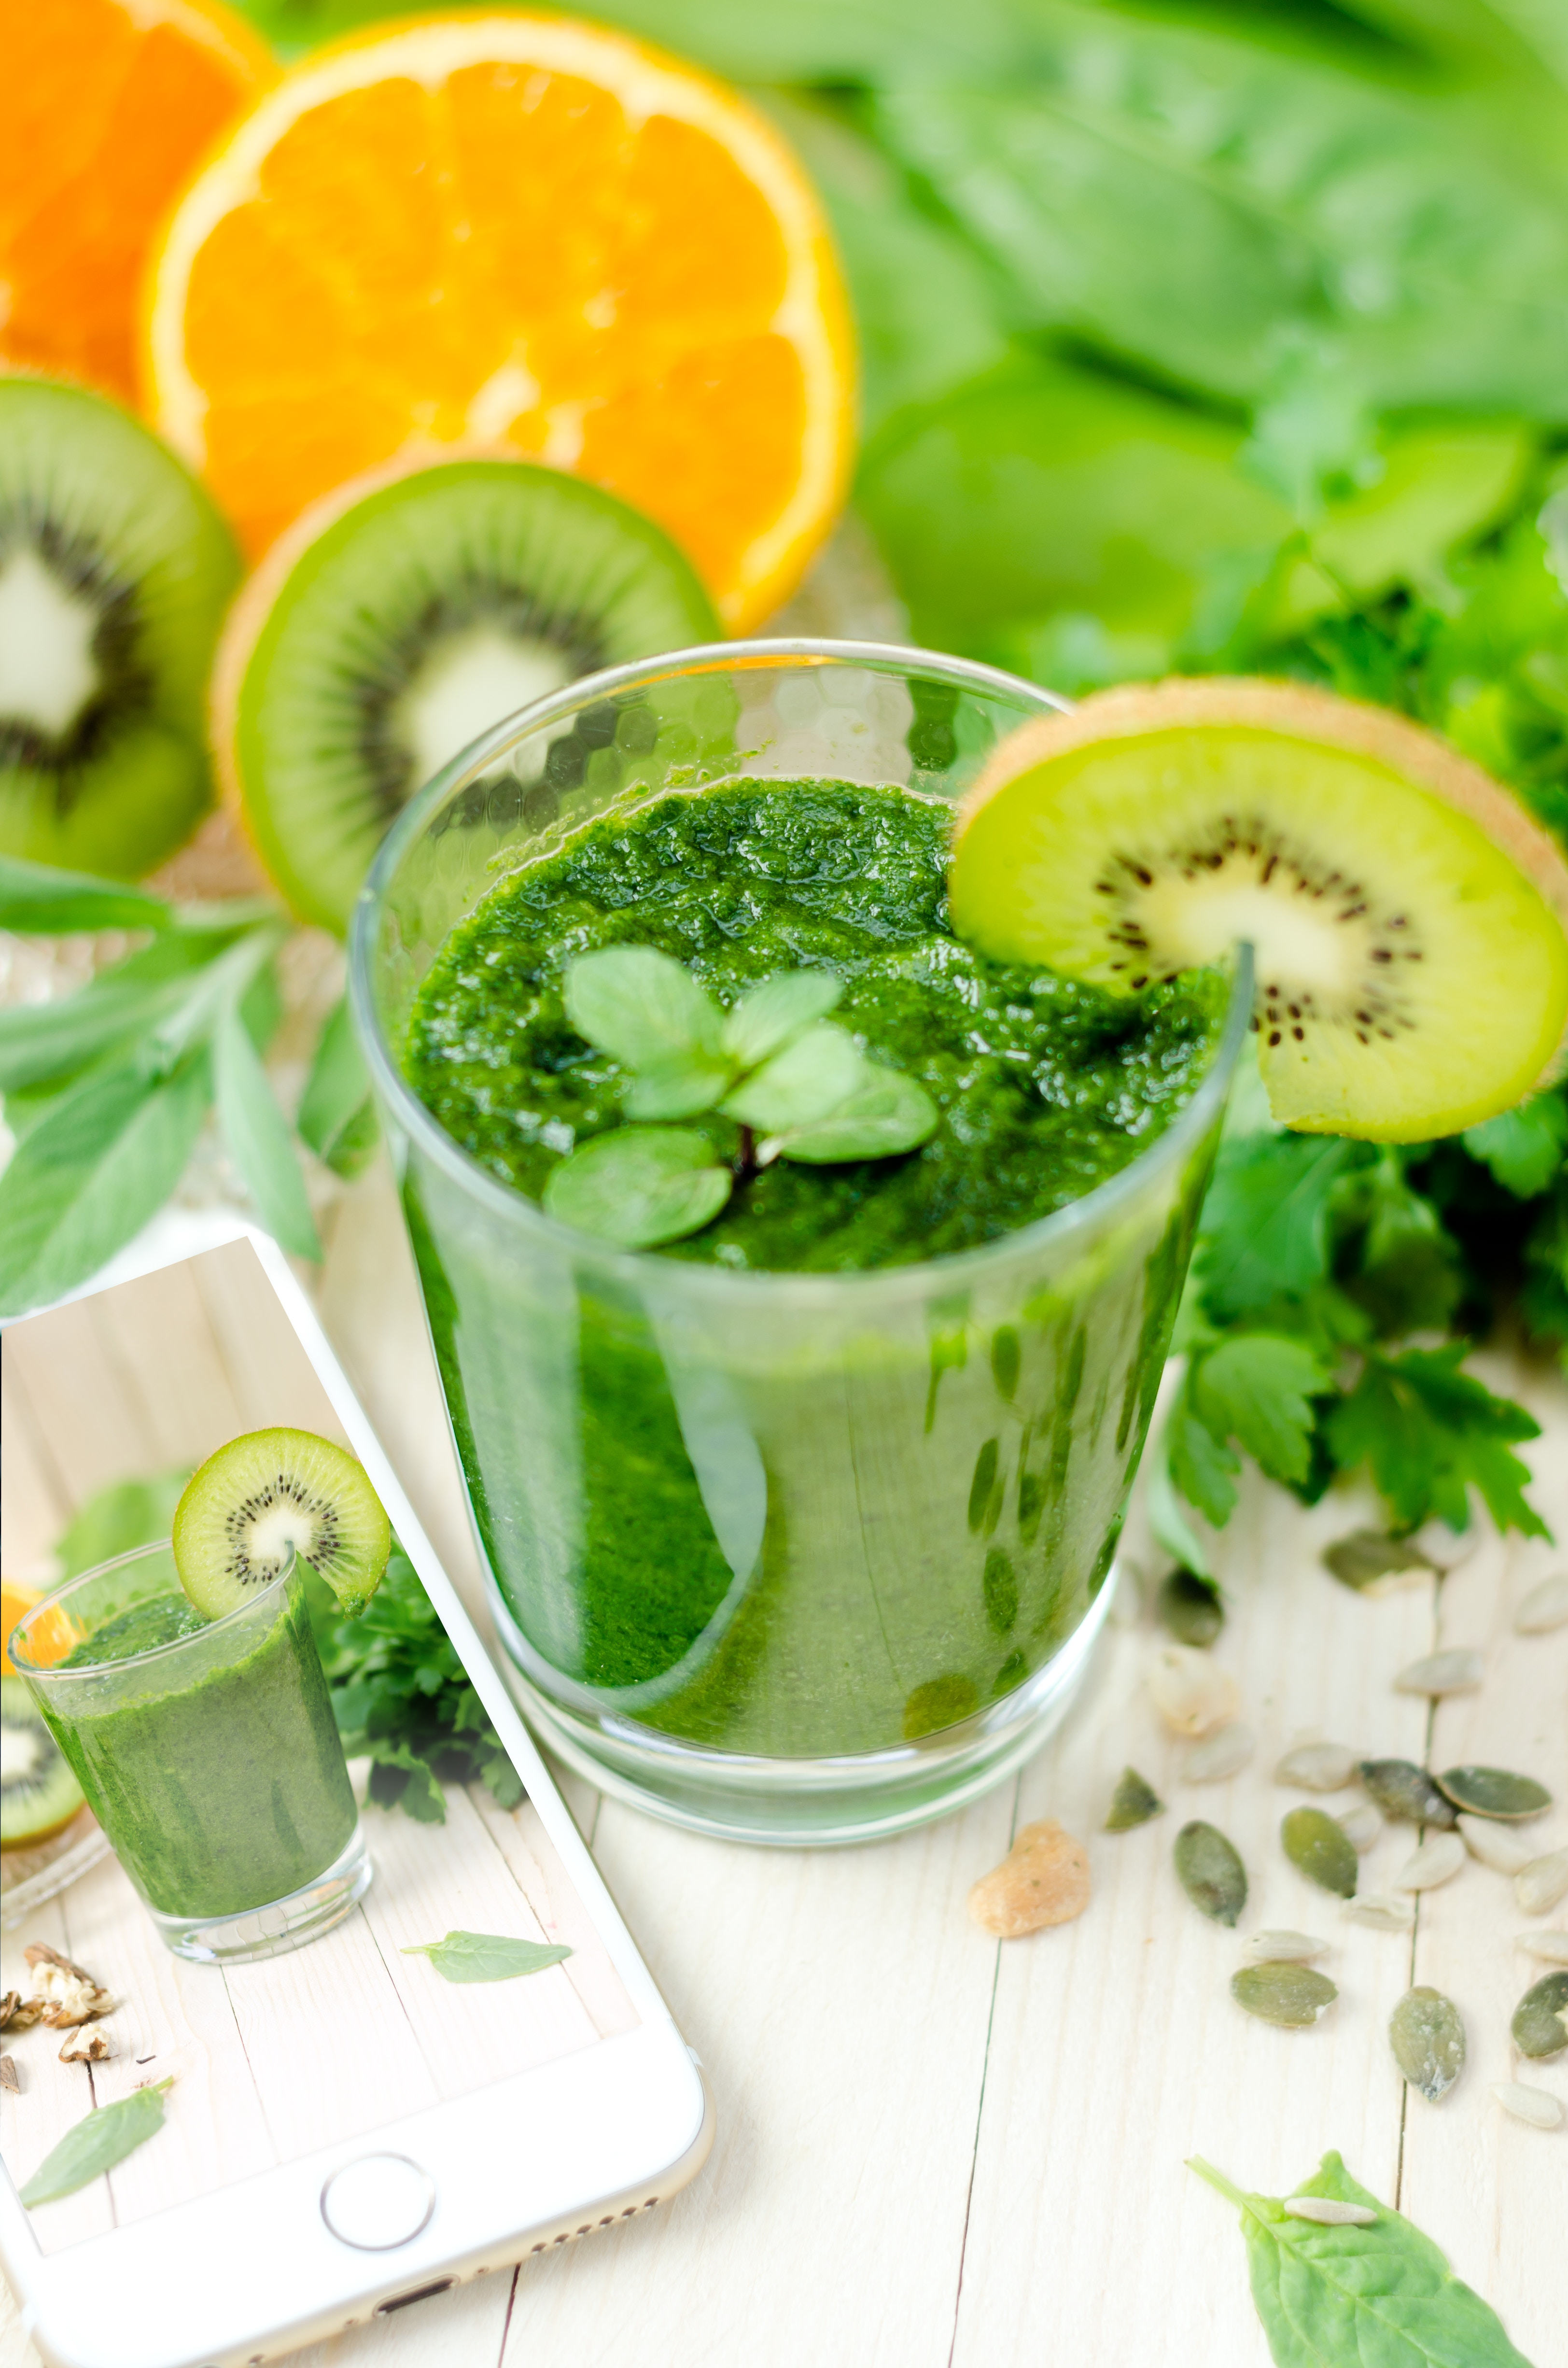 Summer is a great time to detox!